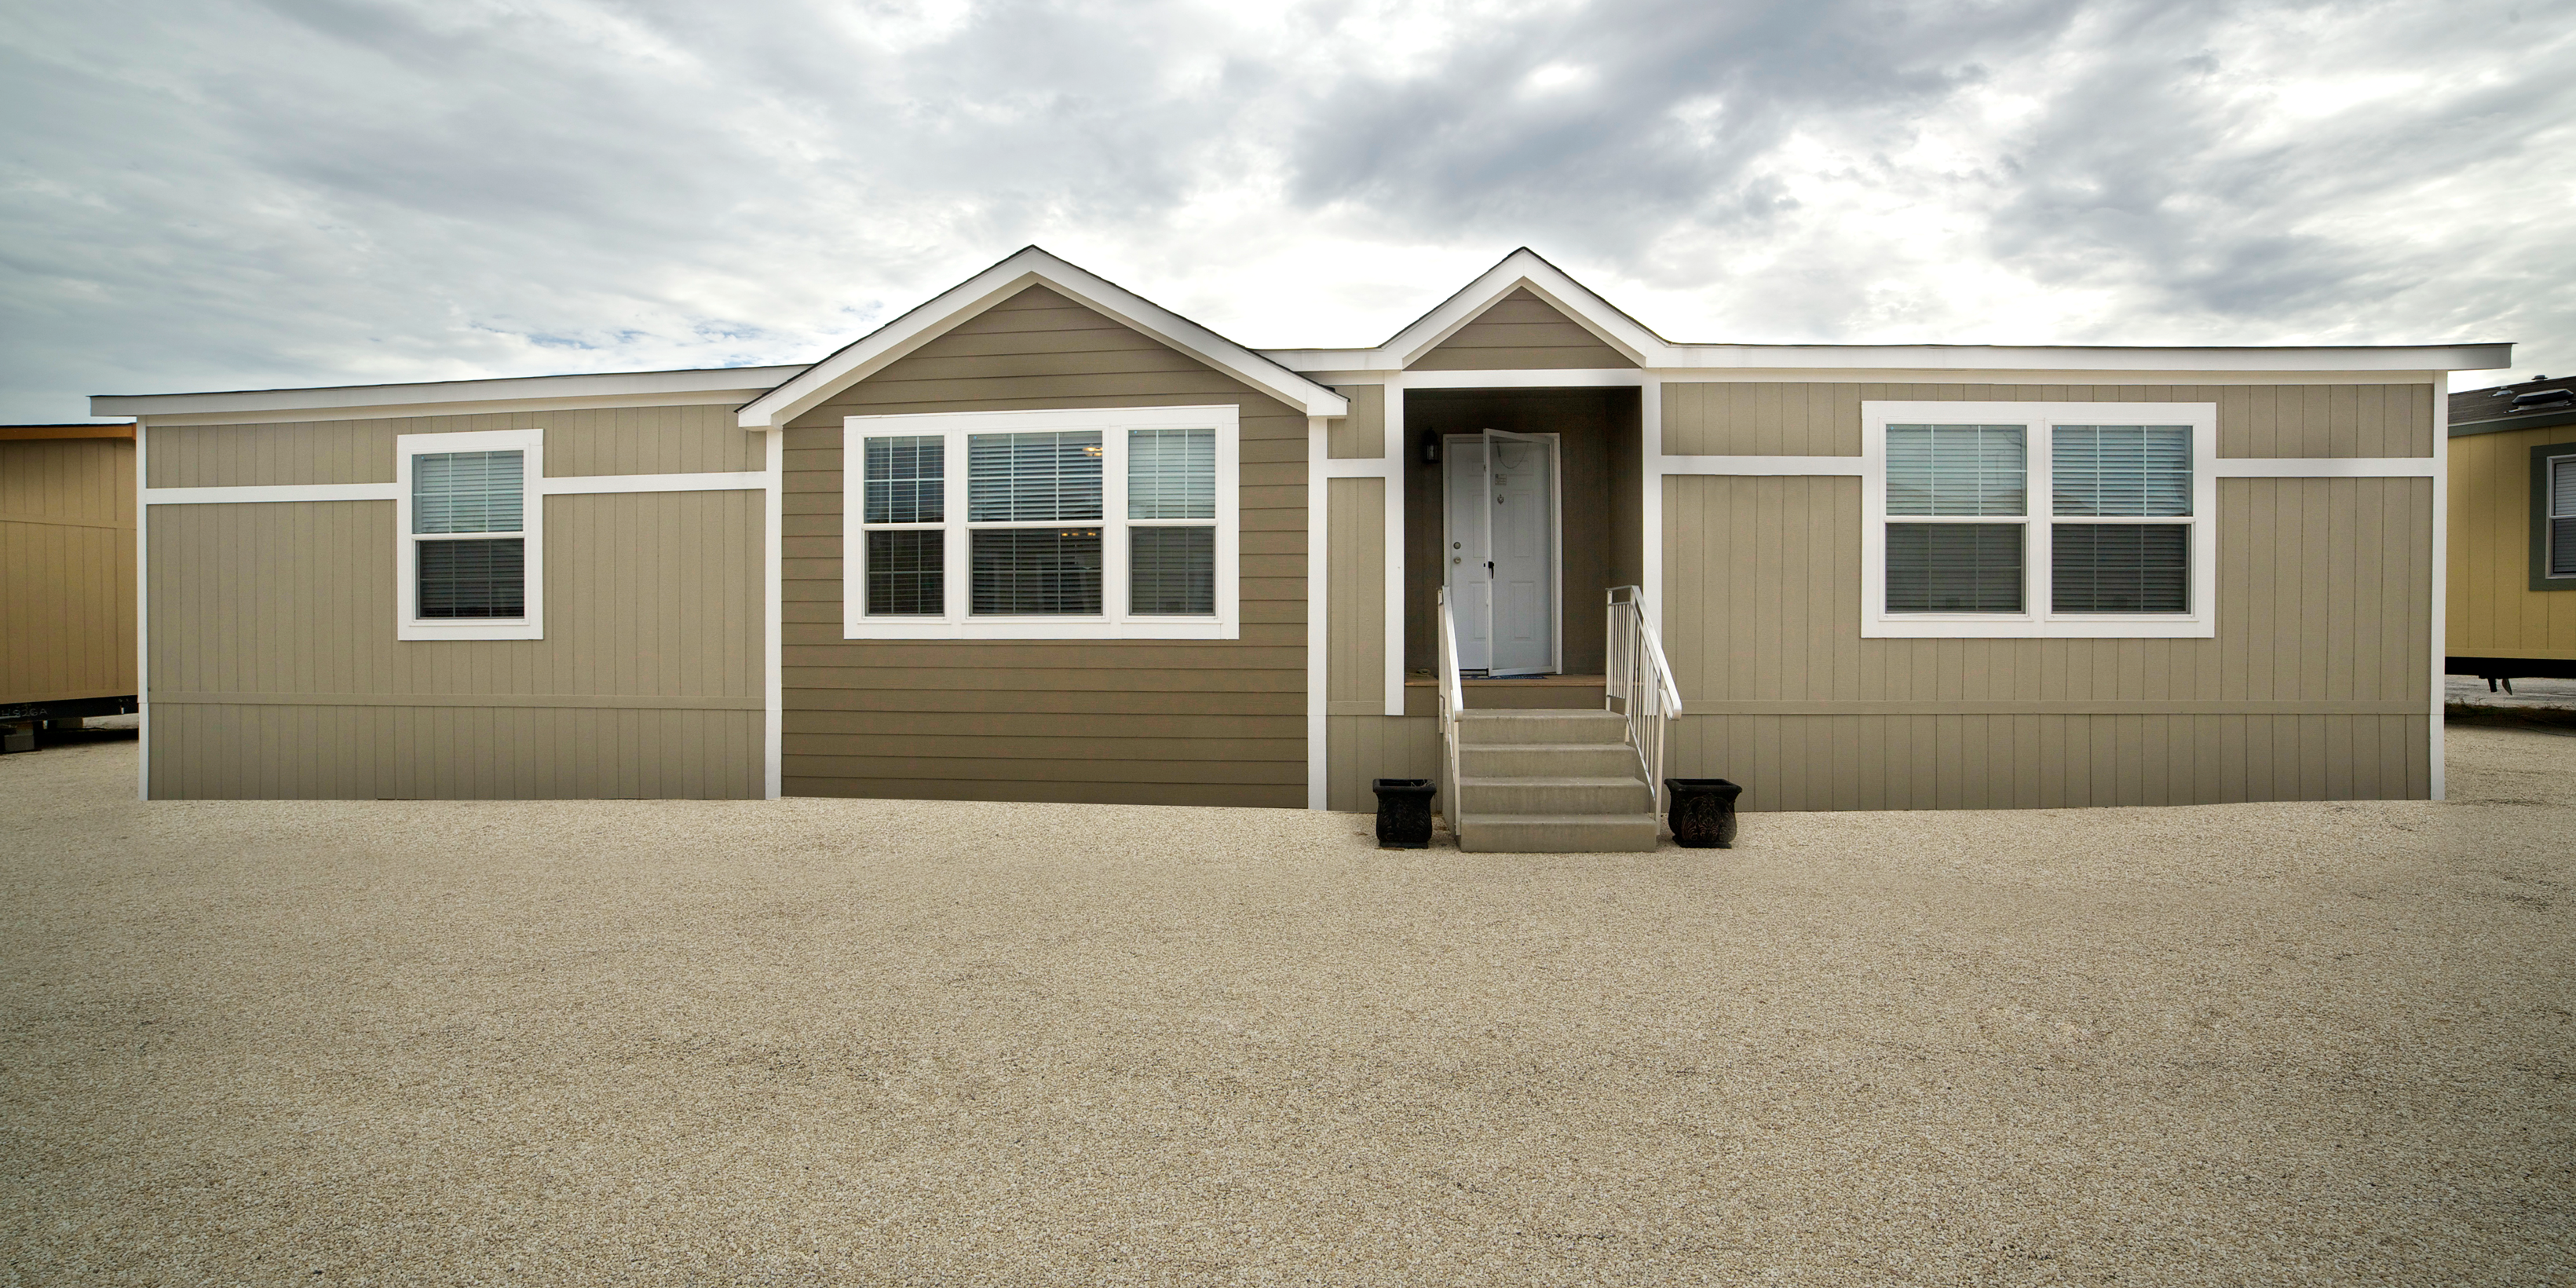 10 Tips for Maintaining Your Manufactured Home